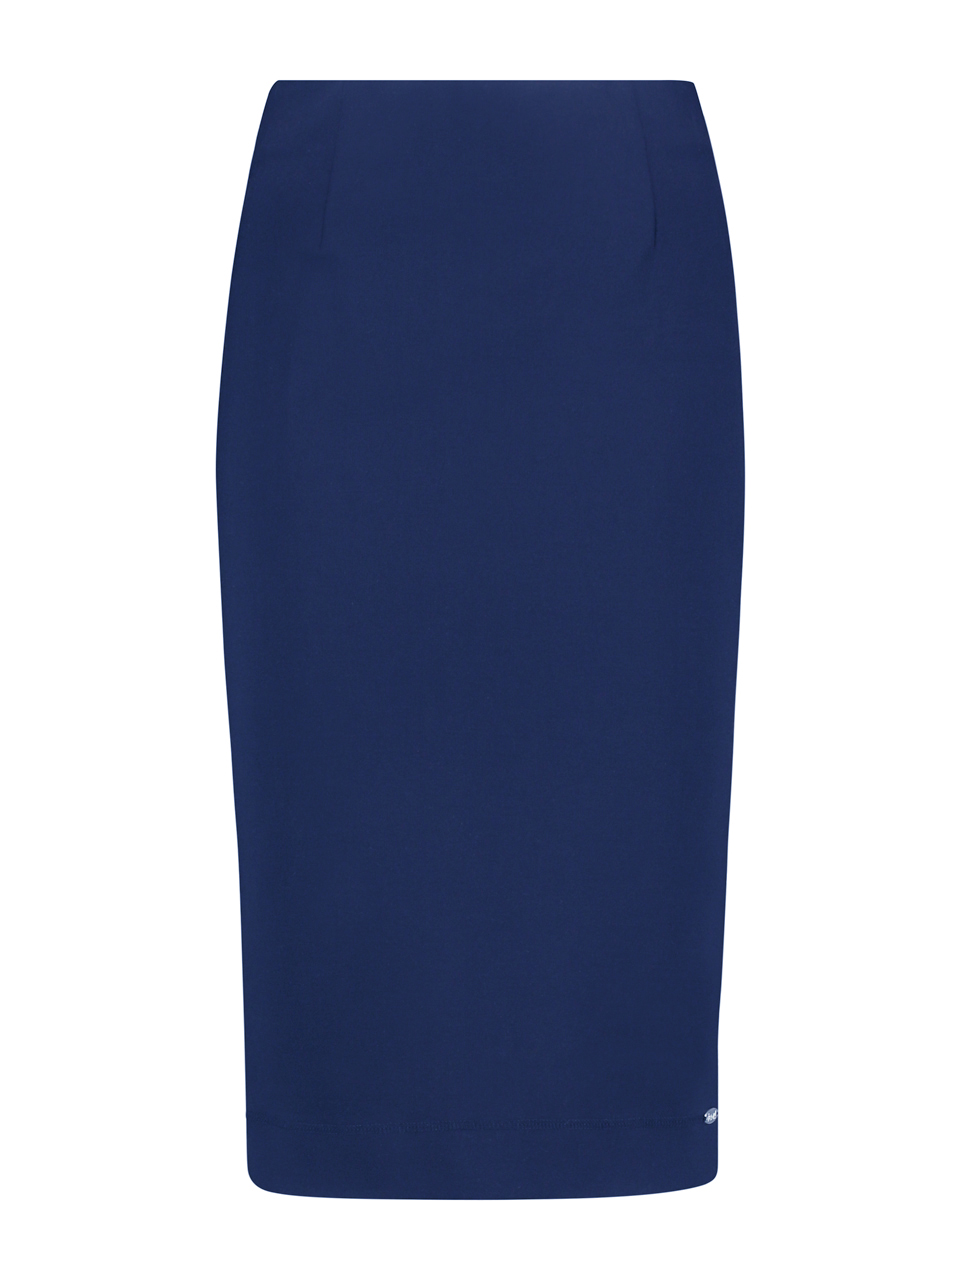 Skirt thick knit - D.blue